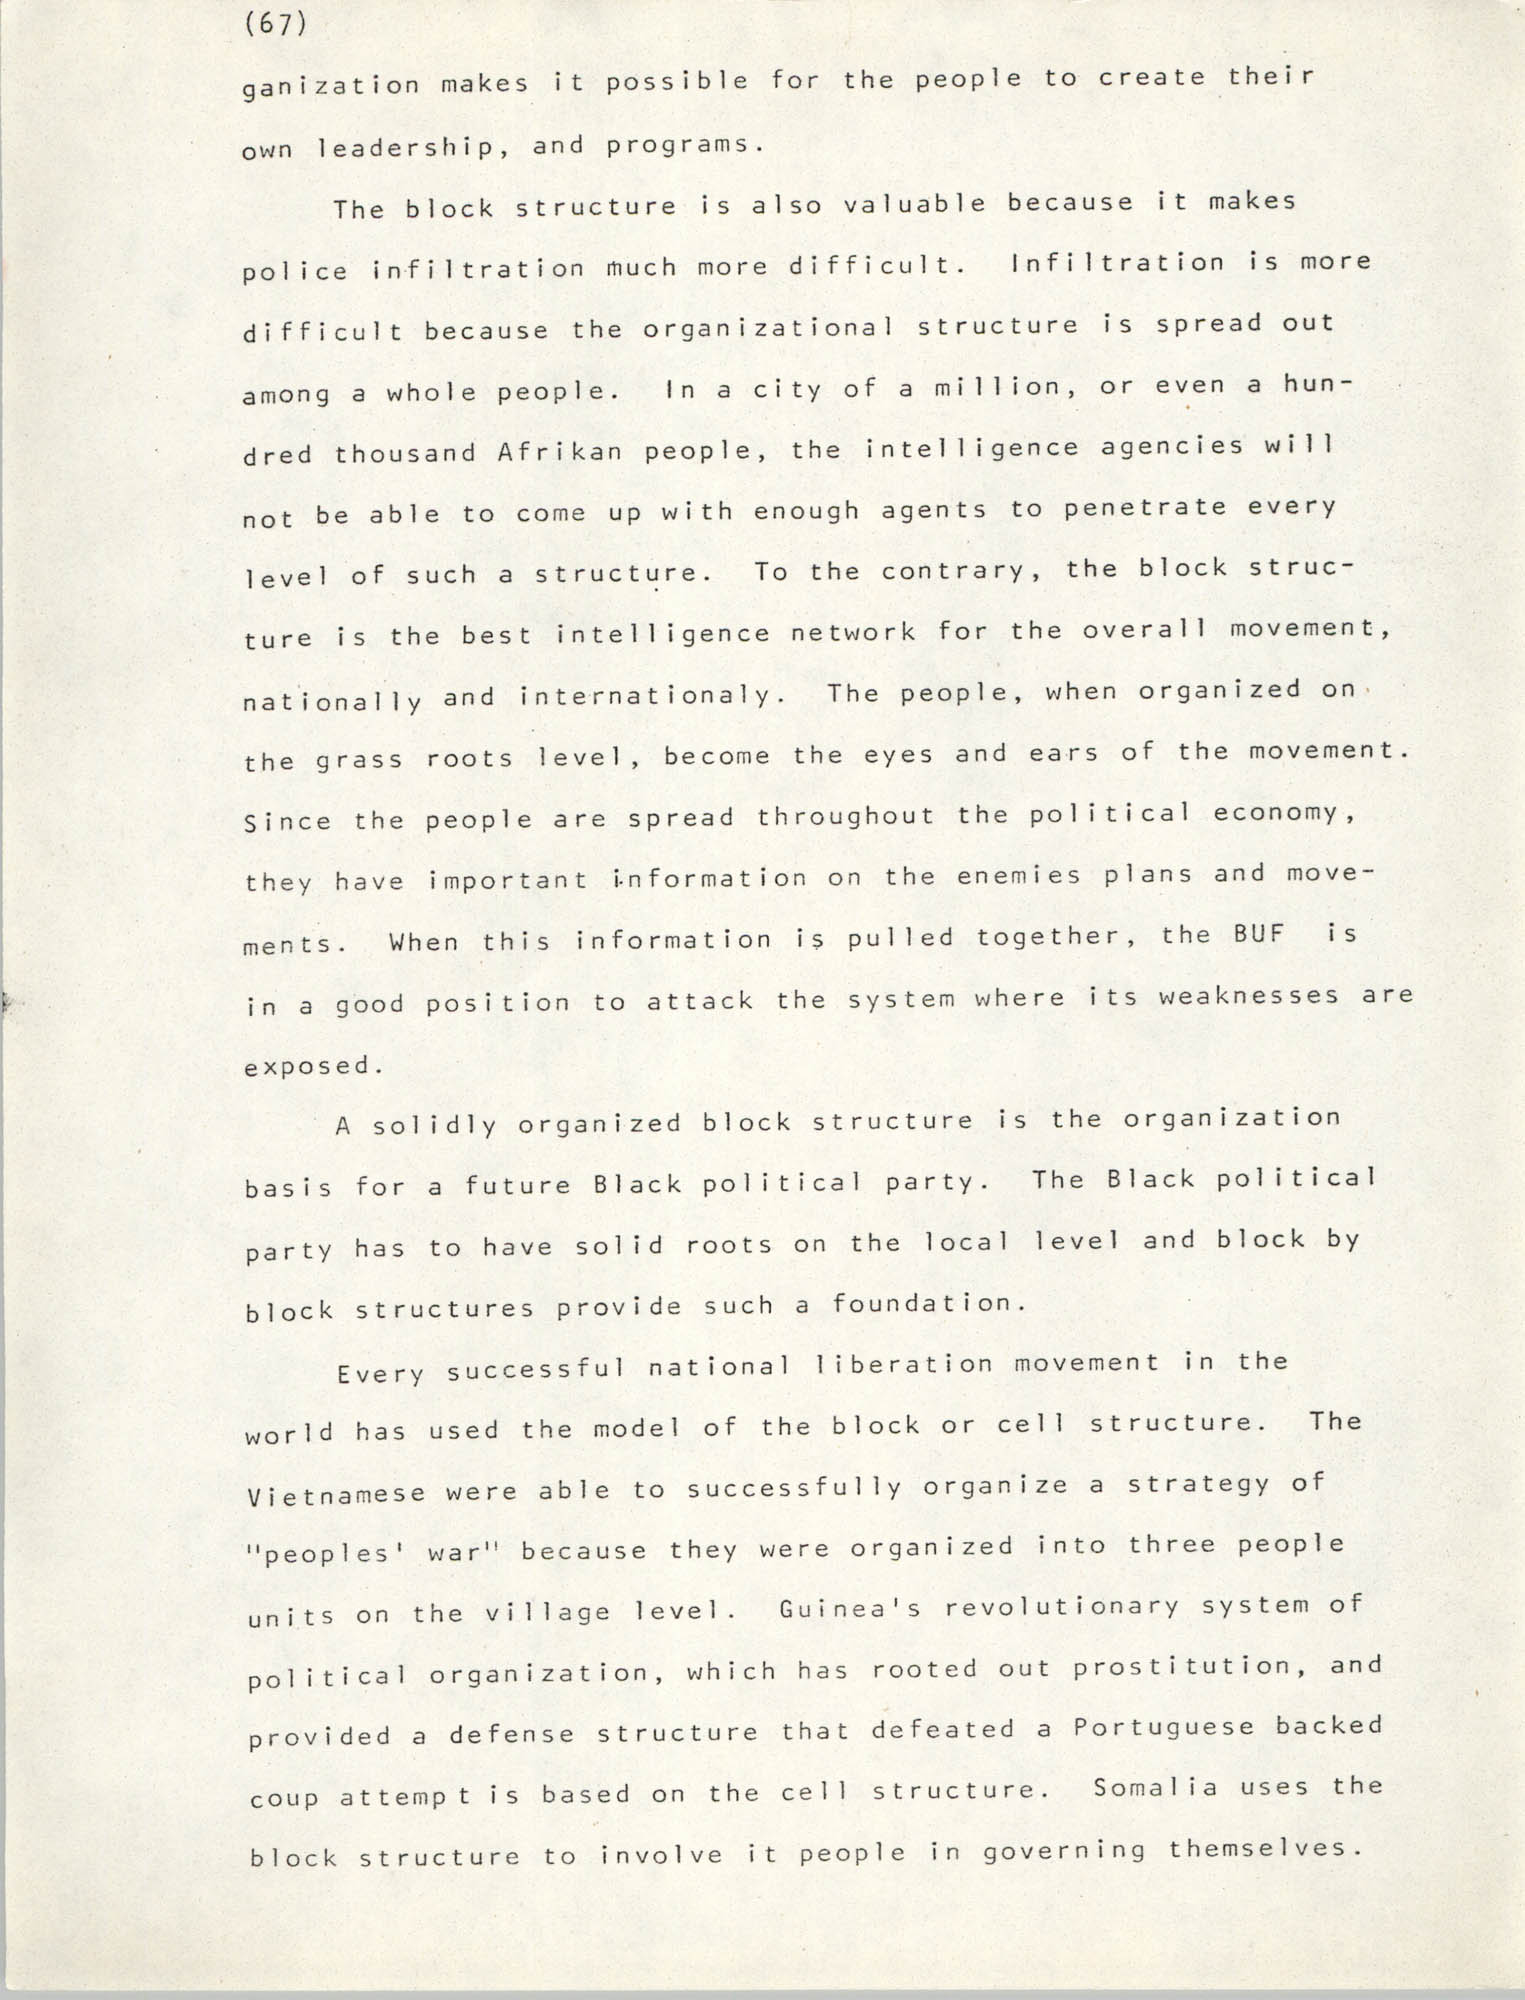 Pan-African Committee of the Black United Front, Page 67